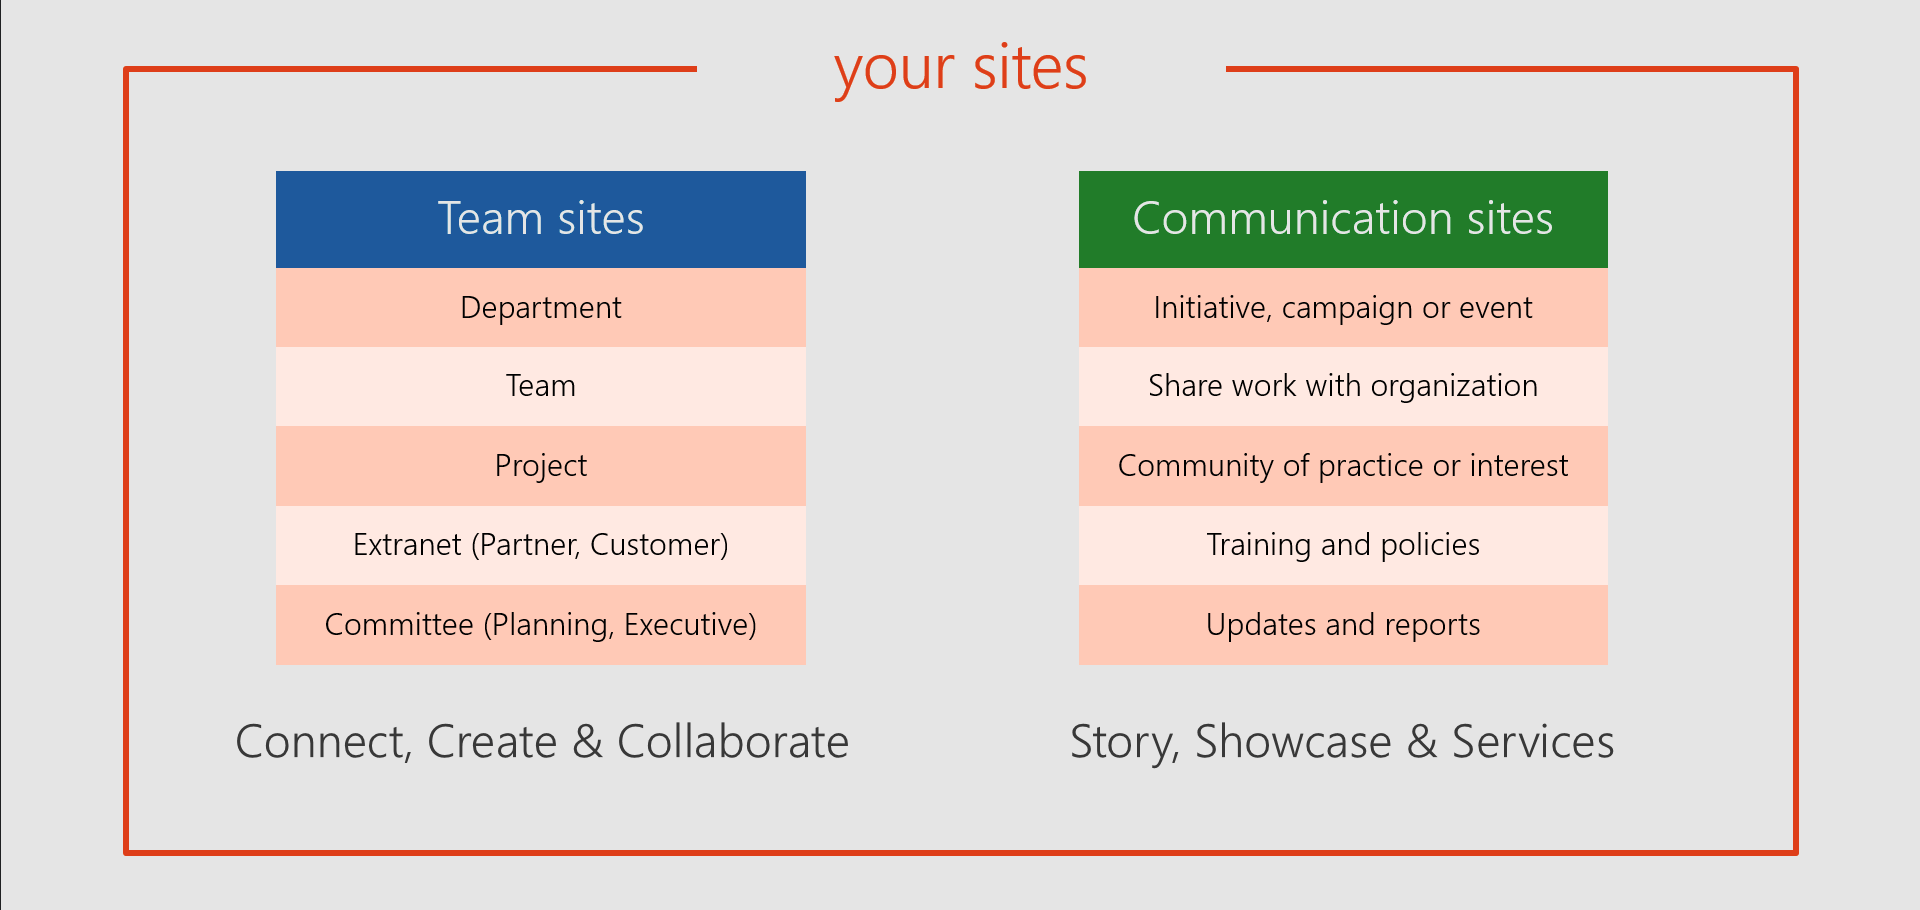 What are team sites and communication sites